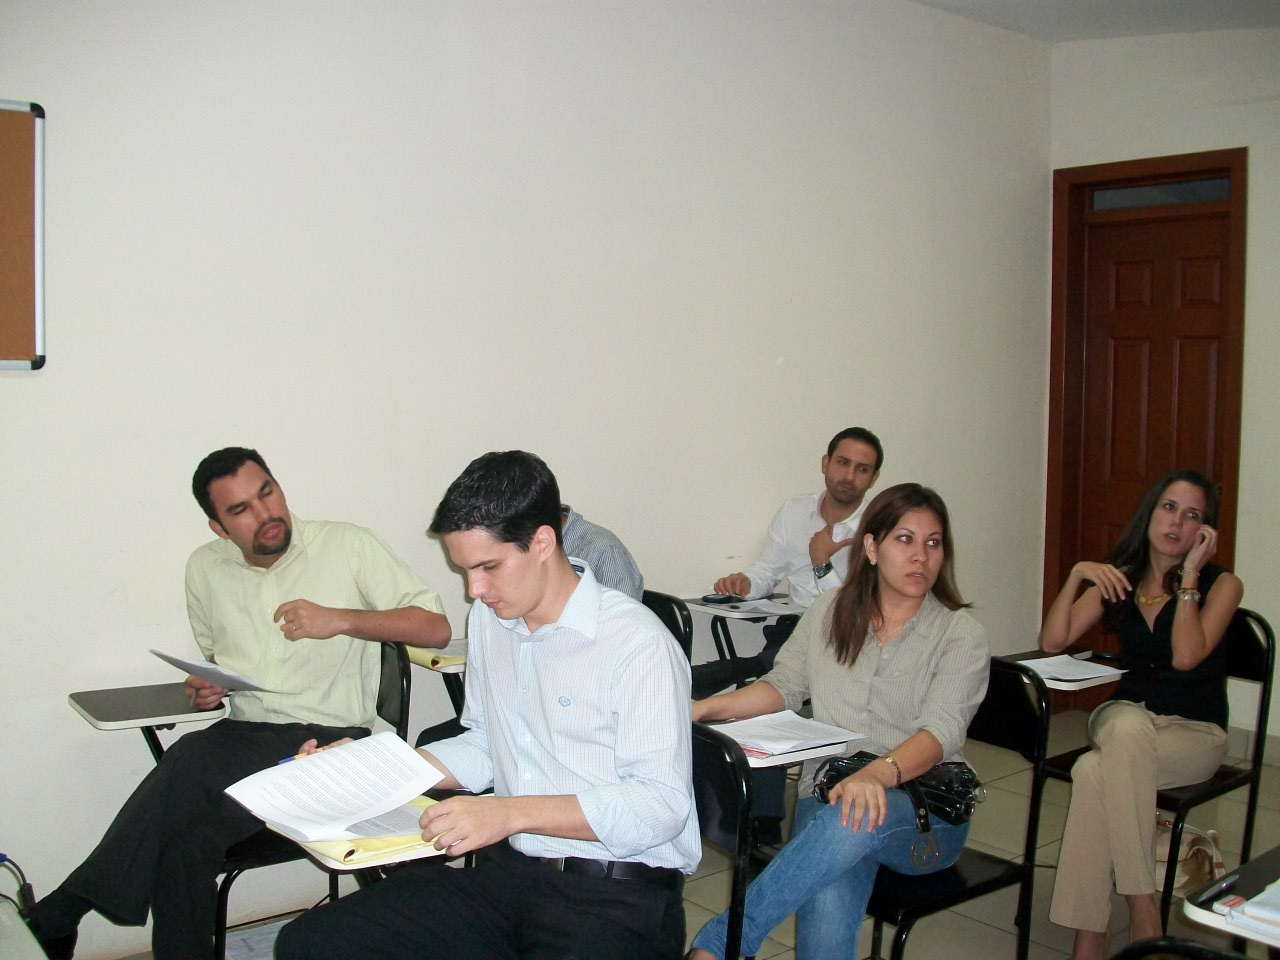 paep test essay The paep (in spanish, prueba de admisión a estudios de postgrado and in english, postgraduate studies admission test), is a standardized test in spanish which evaluates the academic aptitude, cognitive skills and academic performance of the persons interested in studying a postgraduate program.